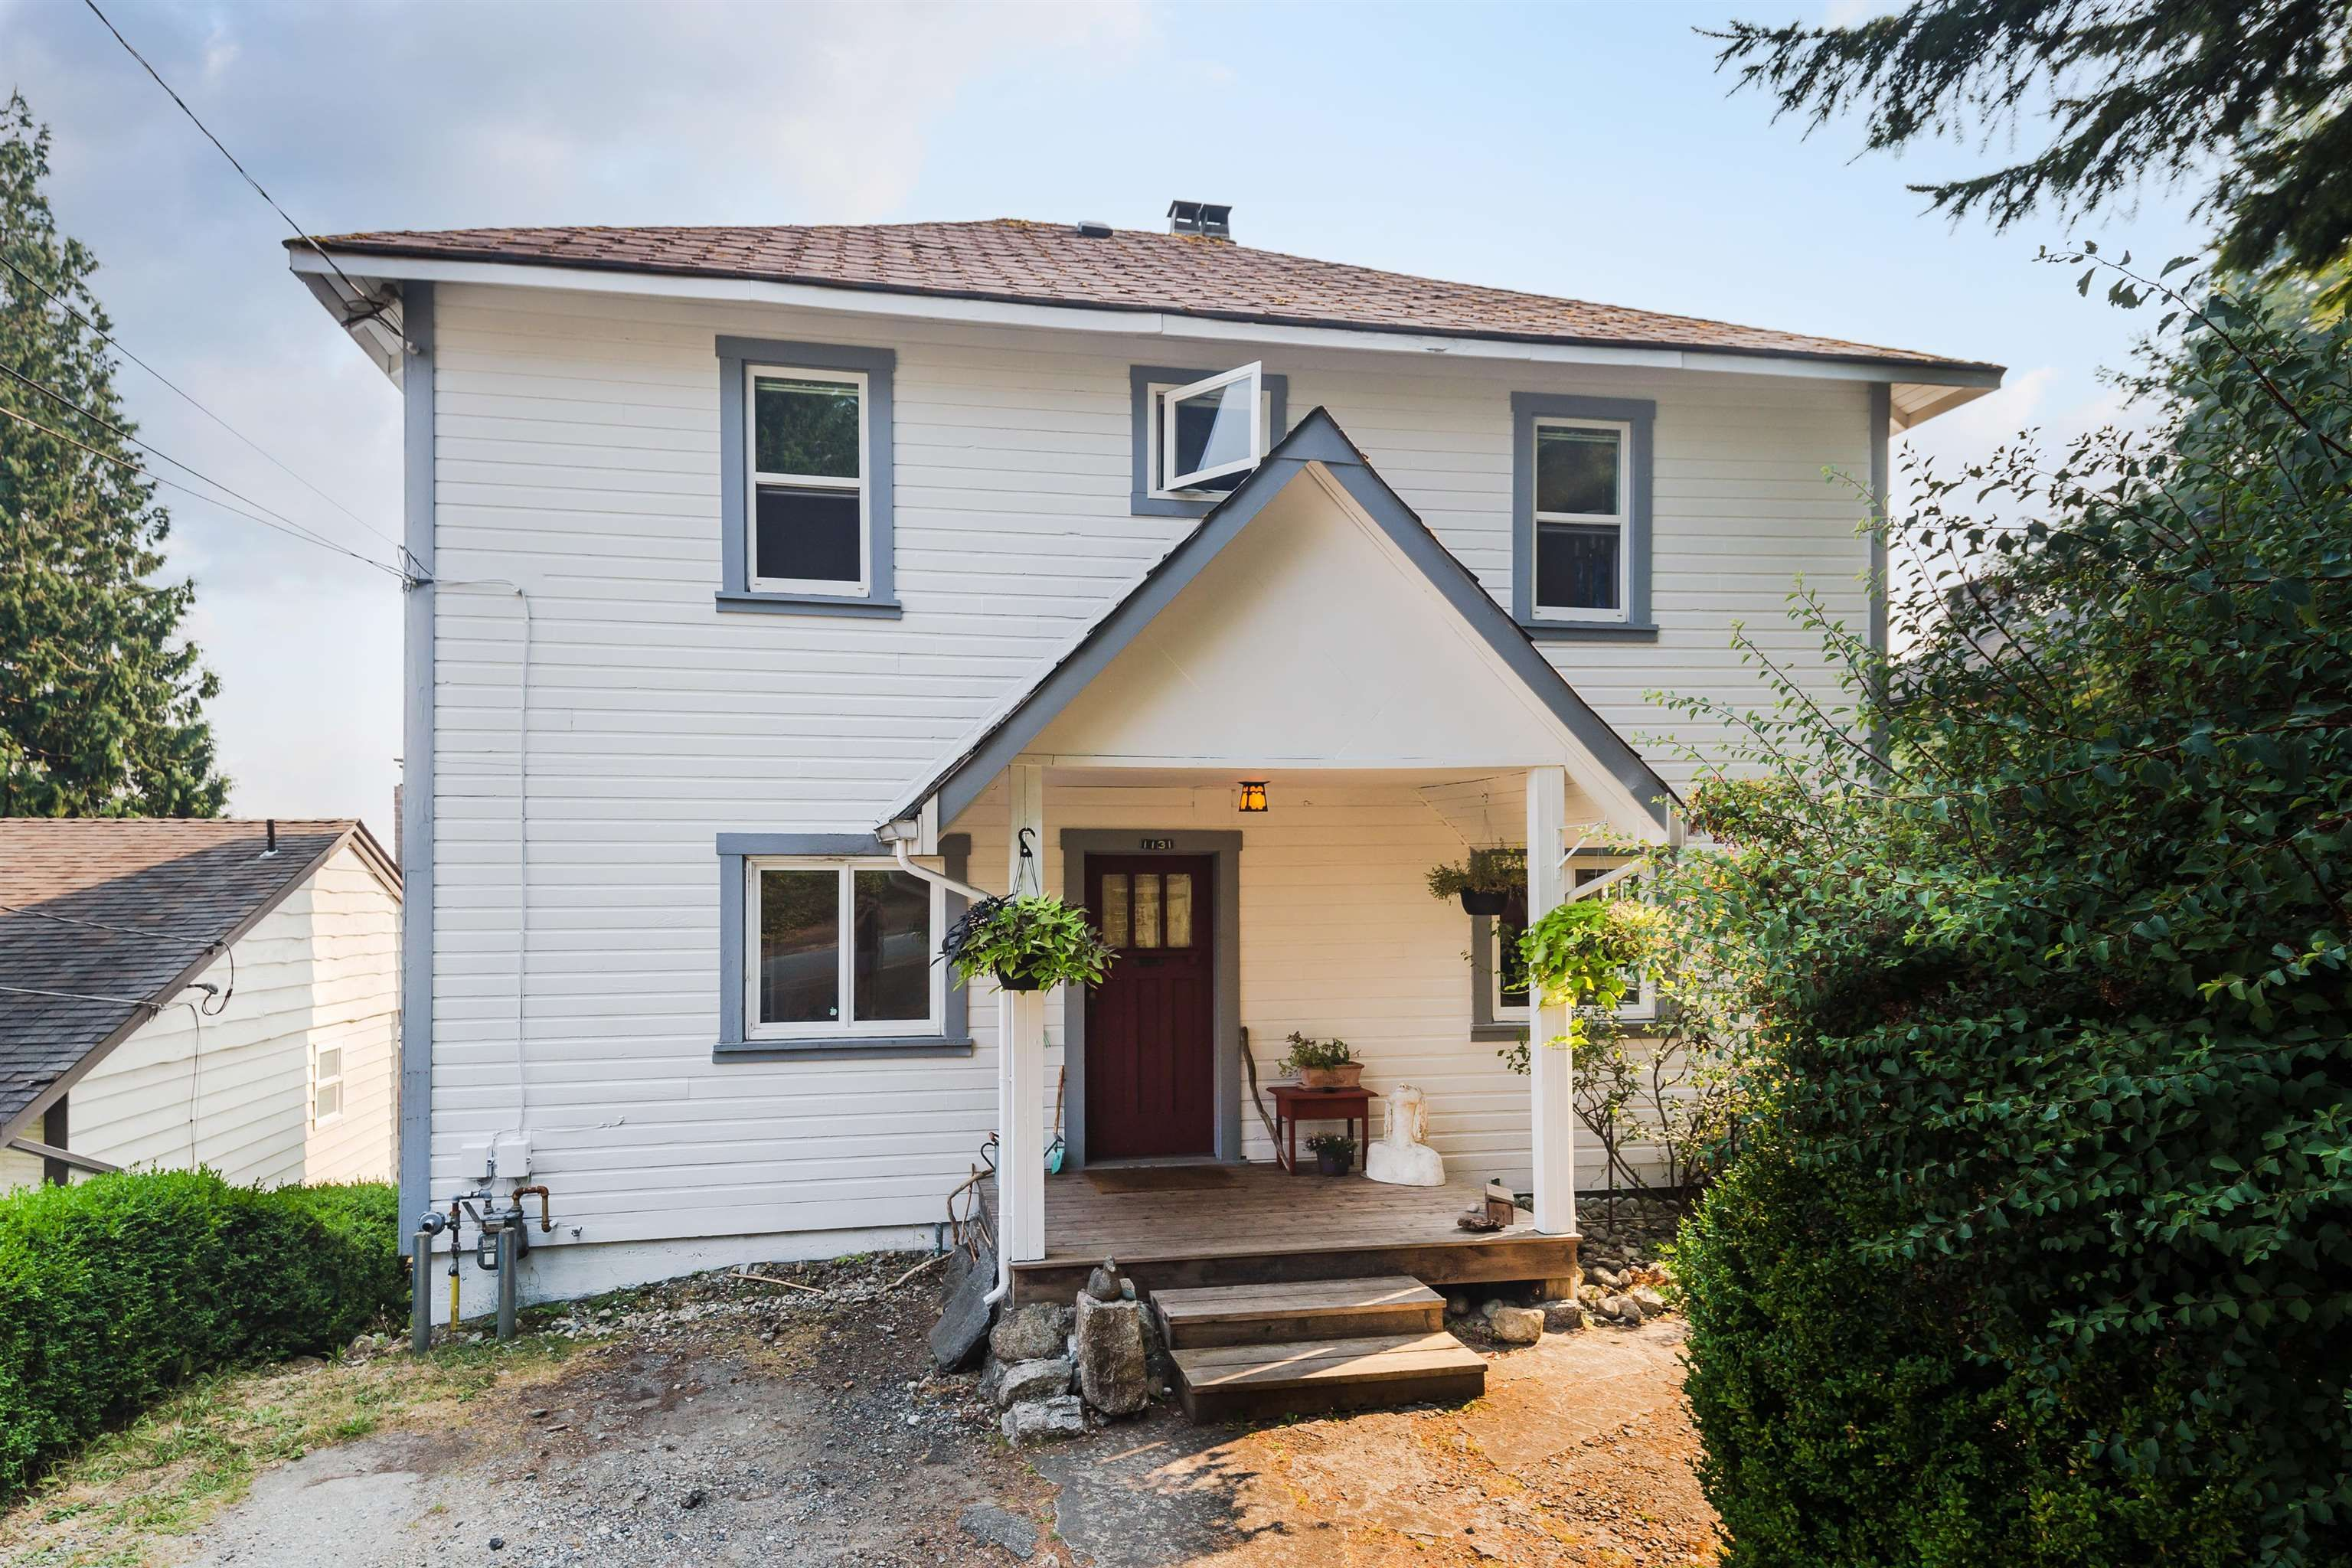 Main Photo: 1131 KILMER Road in North Vancouver: Lynn Valley House for sale : MLS®# R2611818